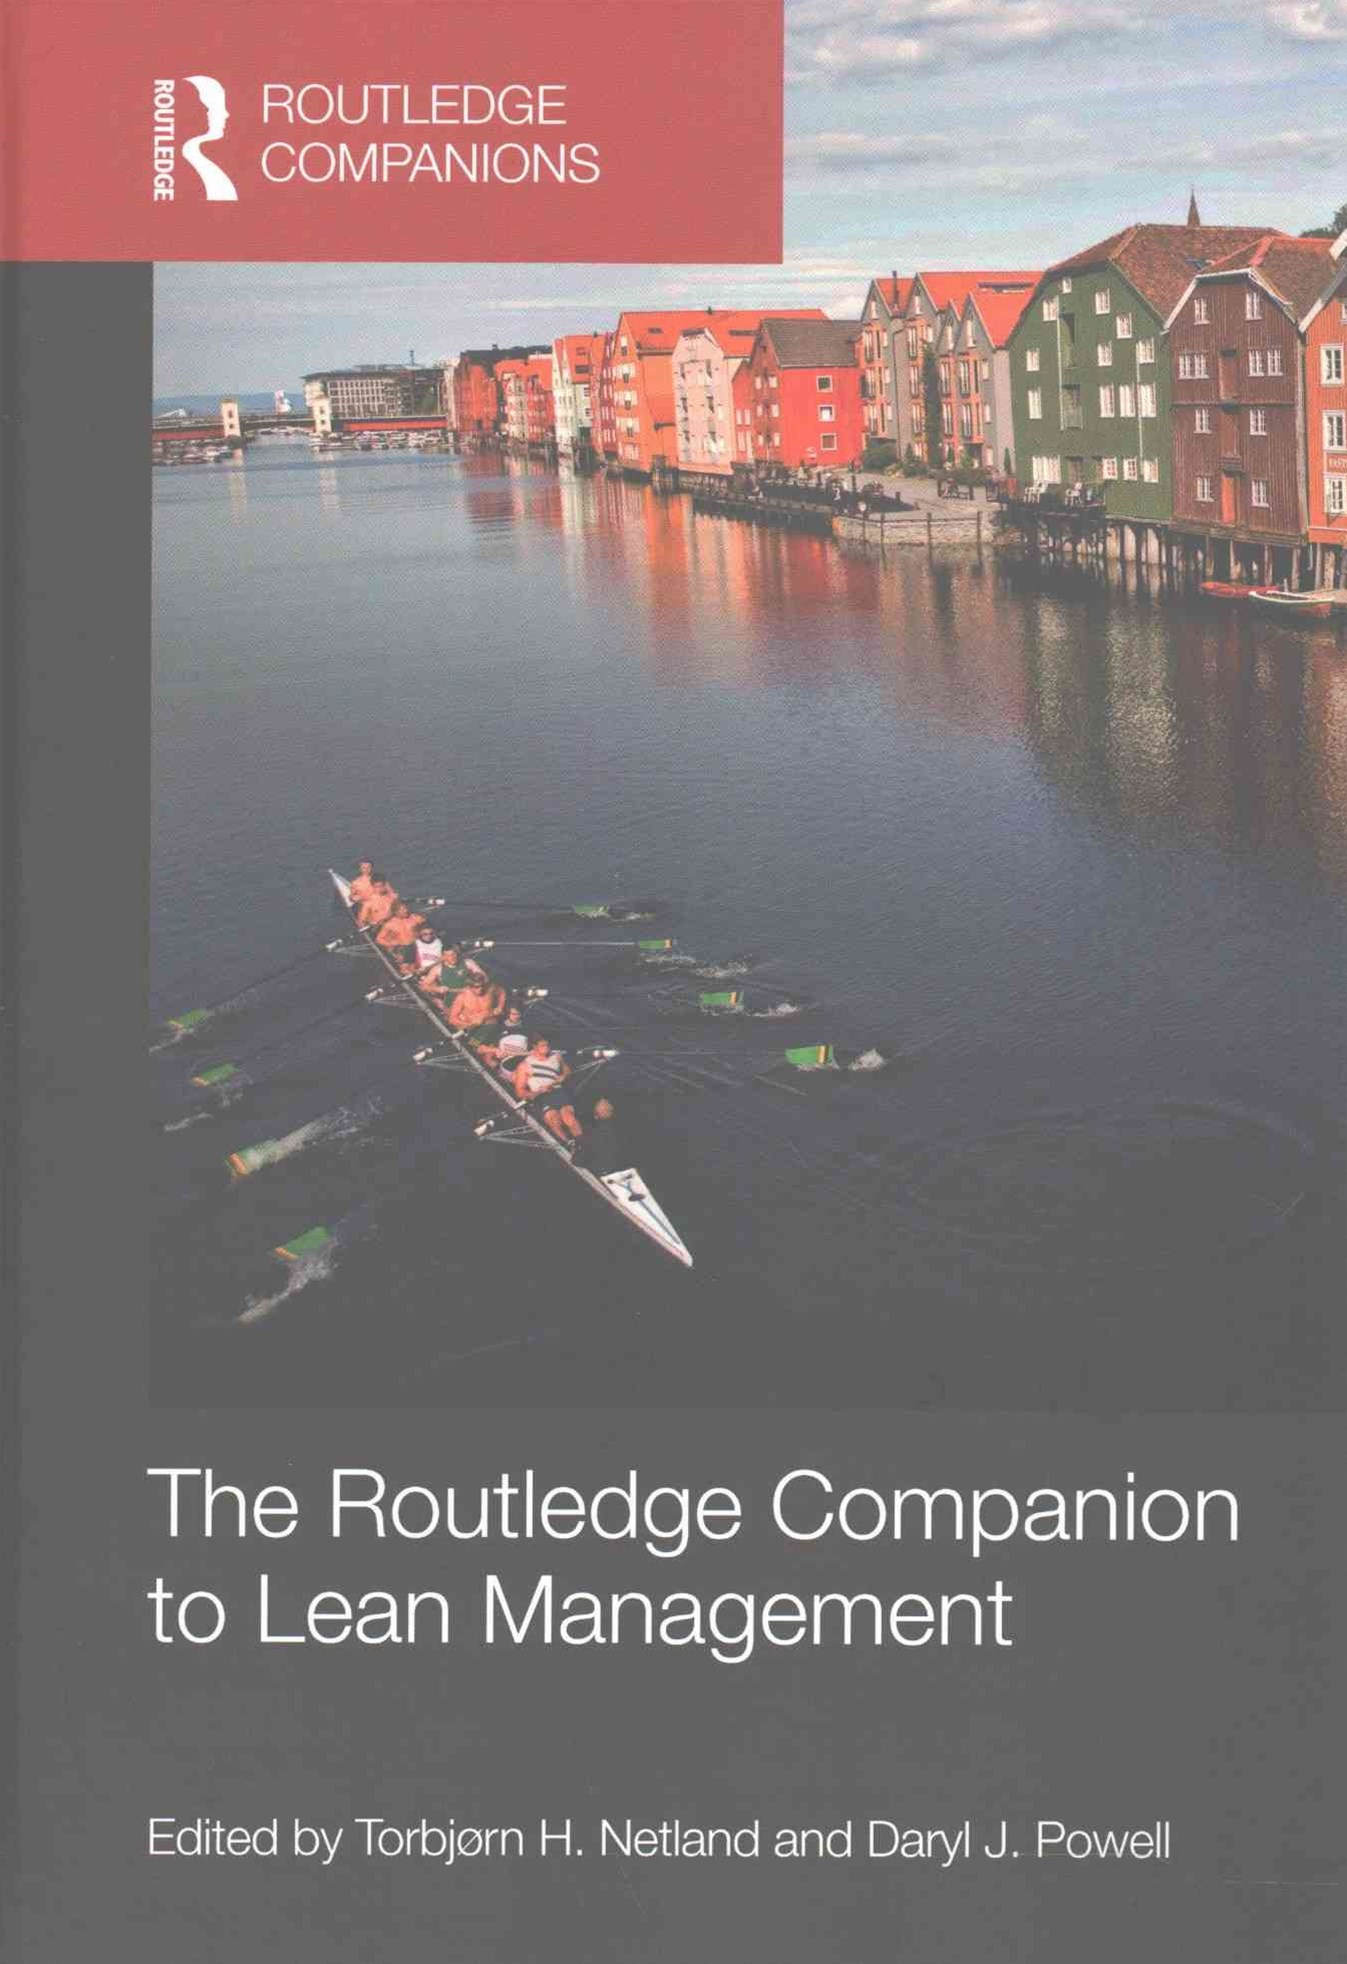 Routledge Companion to Lean Management